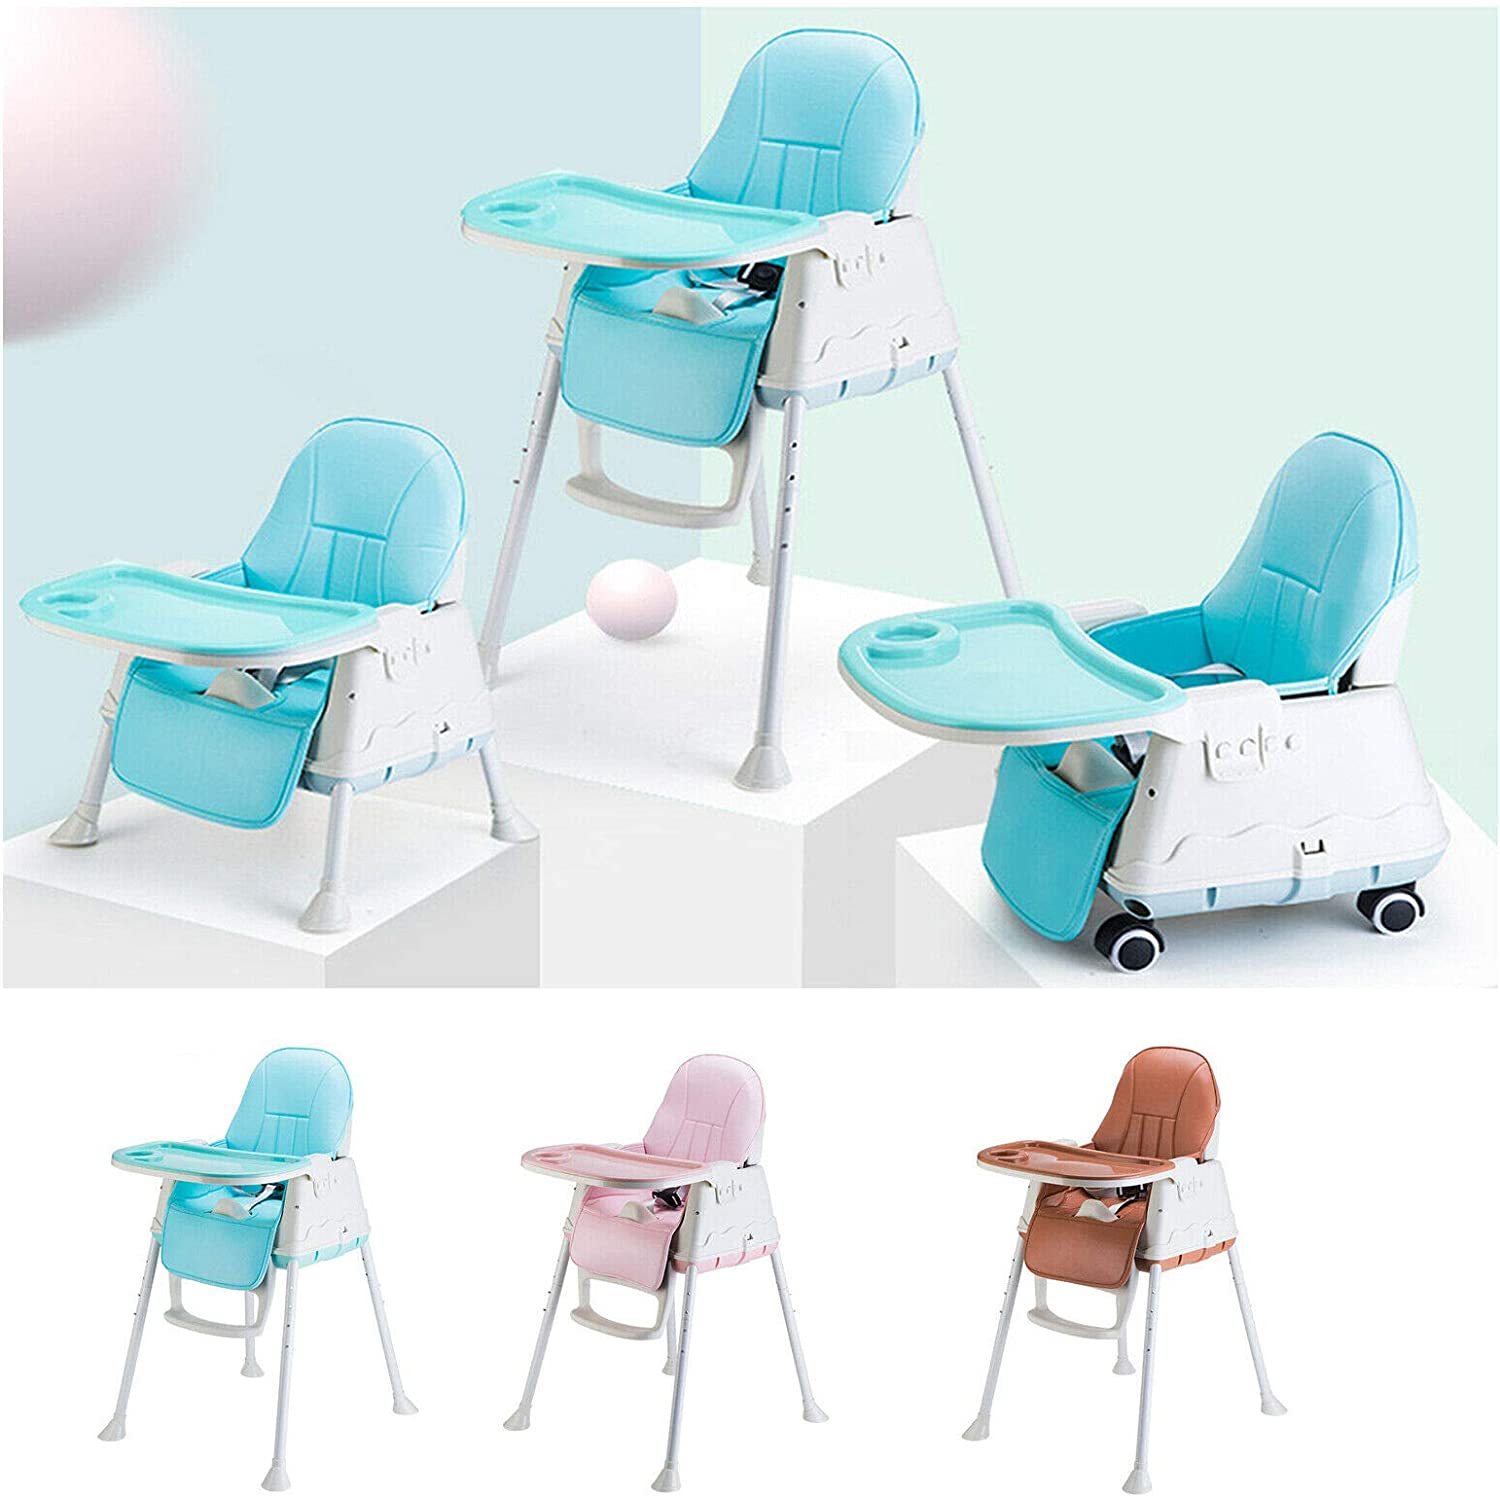 Baby High Chair 3 in 1 Adjustable for Height & Backrest & Safety Belt & Tray Removable, Comfortable Cushion Detachable Soft Leather, Baby Kids Toddler